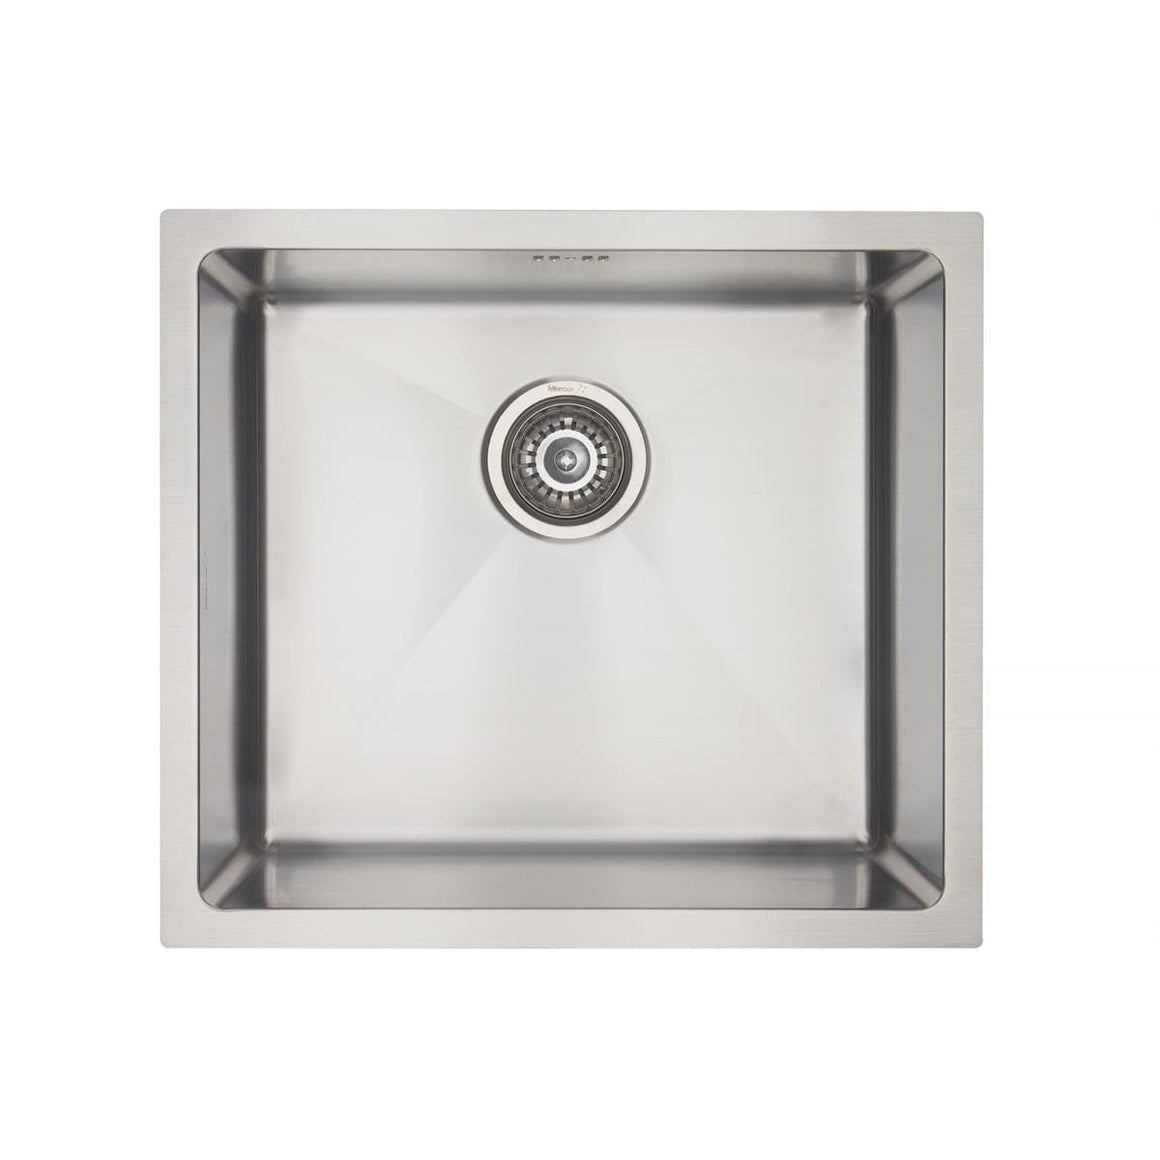 Acero  DV105 Sink - Oxford 450 x 400mm